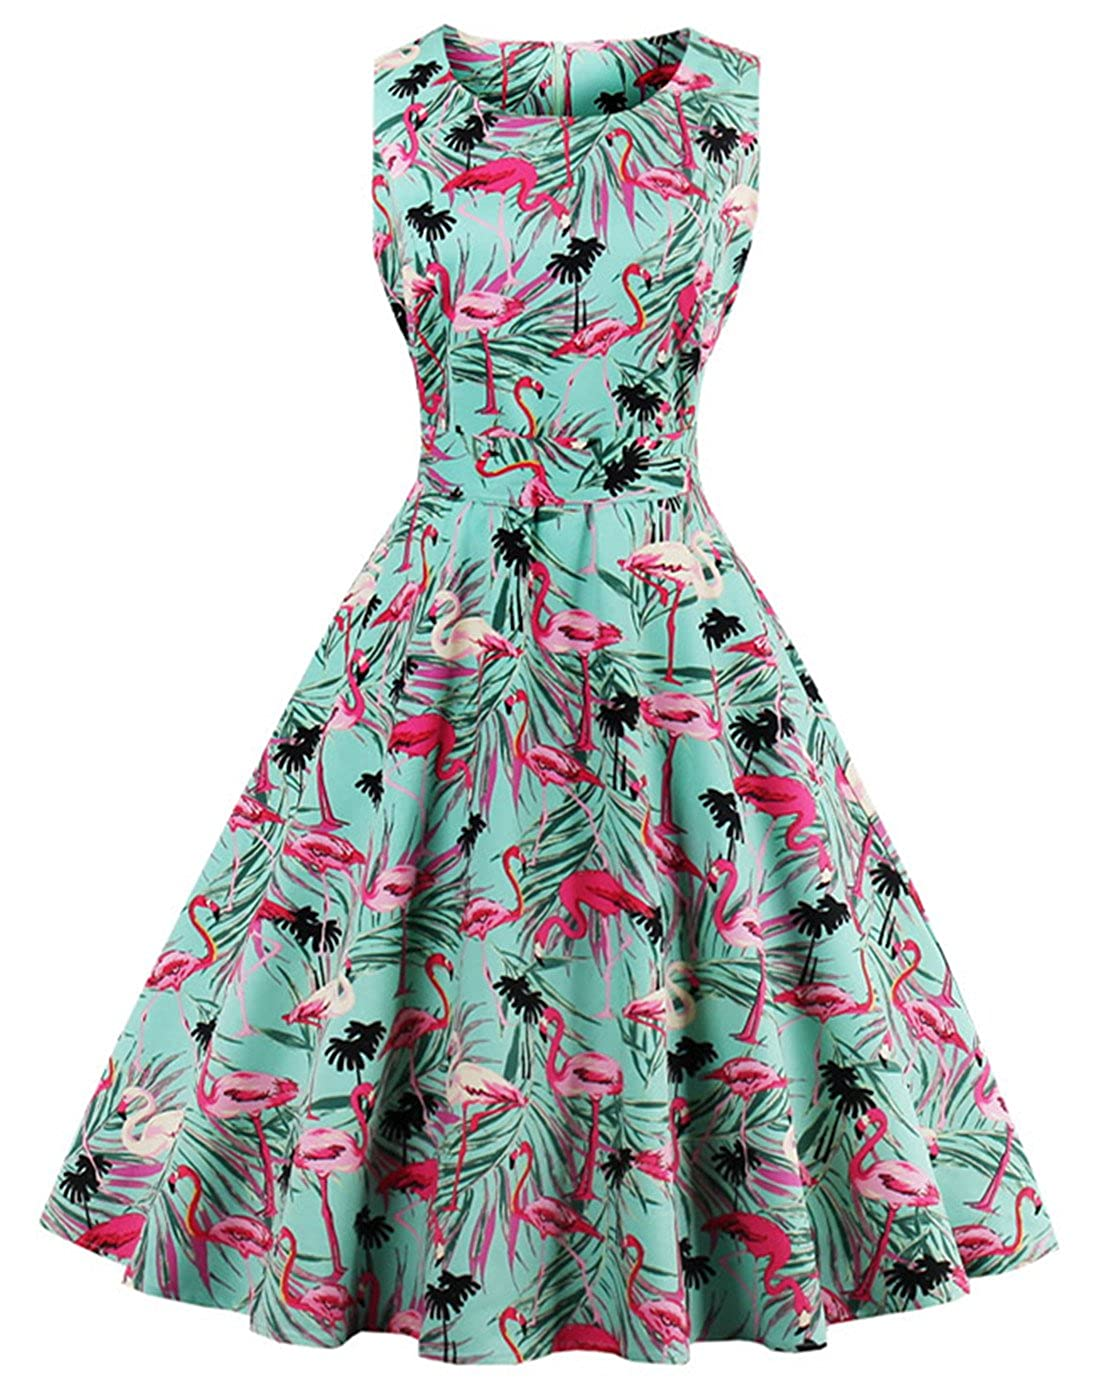 New Fifties Dresses | 50s Inspired Dresses Wellwits Womens Tropical Leaf Flamingo Hepburn 1950s Vintage Swing Dress $24.98 AT vintagedancer.com